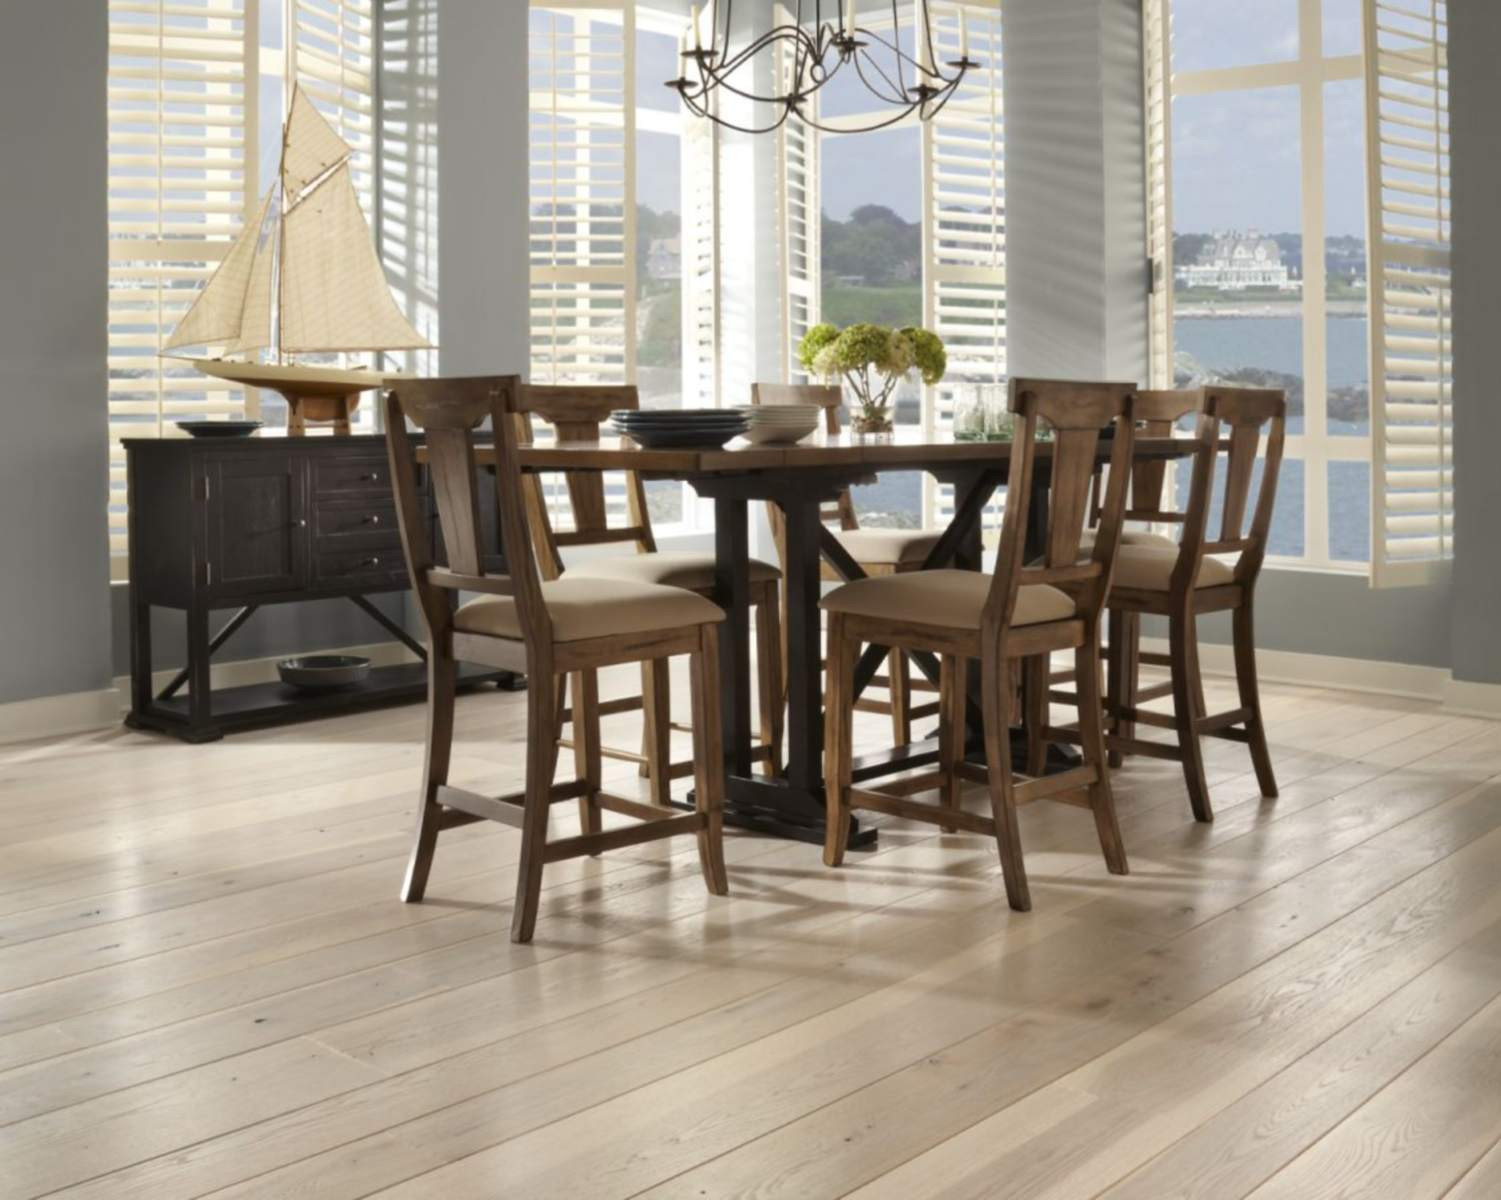 can bruce engineered hardwood floors be refinished of top 5 brands for solid hardwood flooring intended for a dining room with carlisle hickorys wide plank flooring